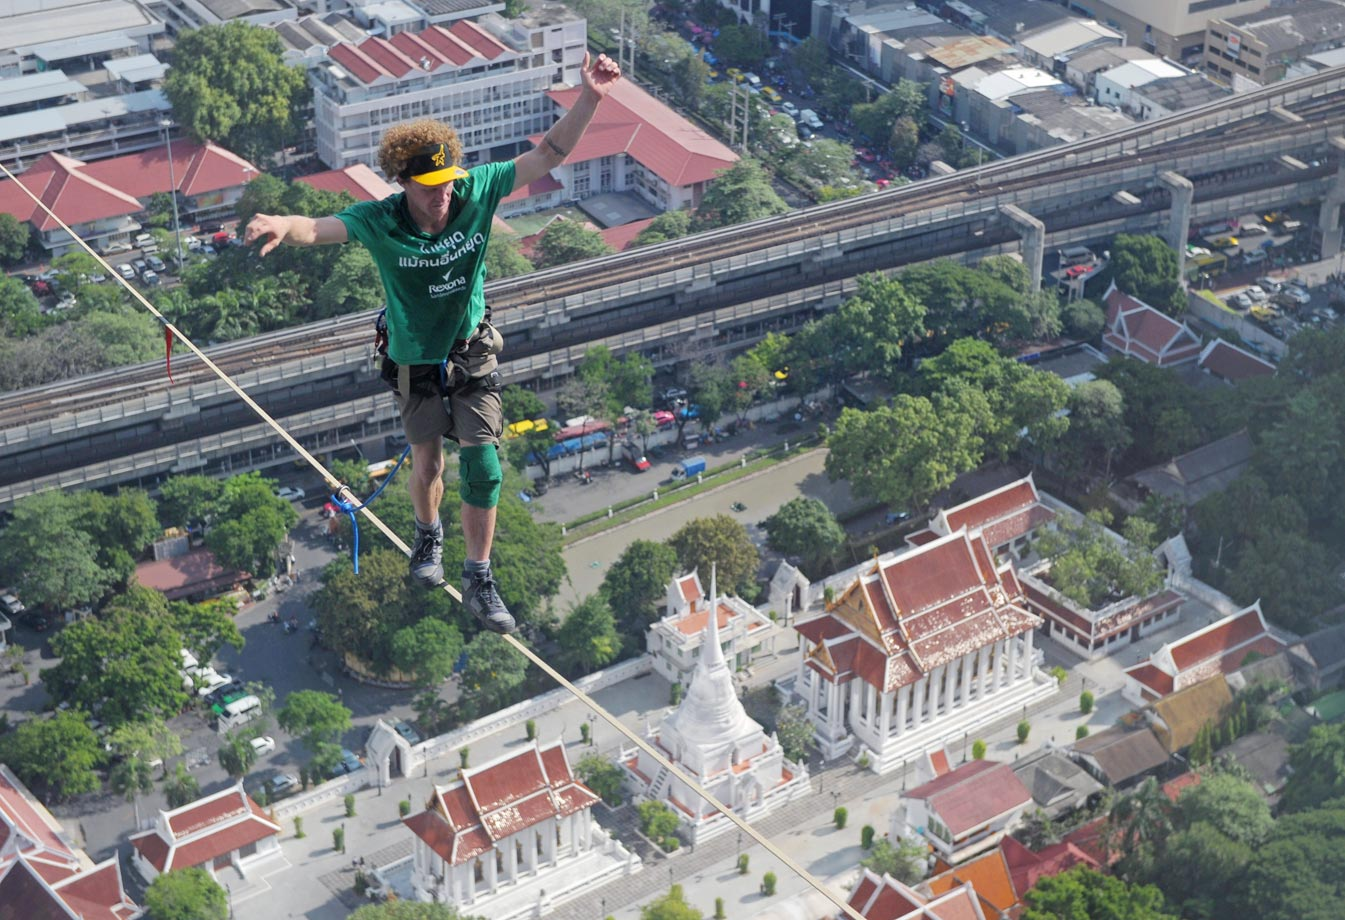 Andy Lewis of the U.S. balances as he walks on a highline from the rooftop of a building in Bangkok on July 23, 2014. Lewis set a world record after walking on a highline from the rooftop of a building to another covering a distance of 169 meters in one hour and five minutes.